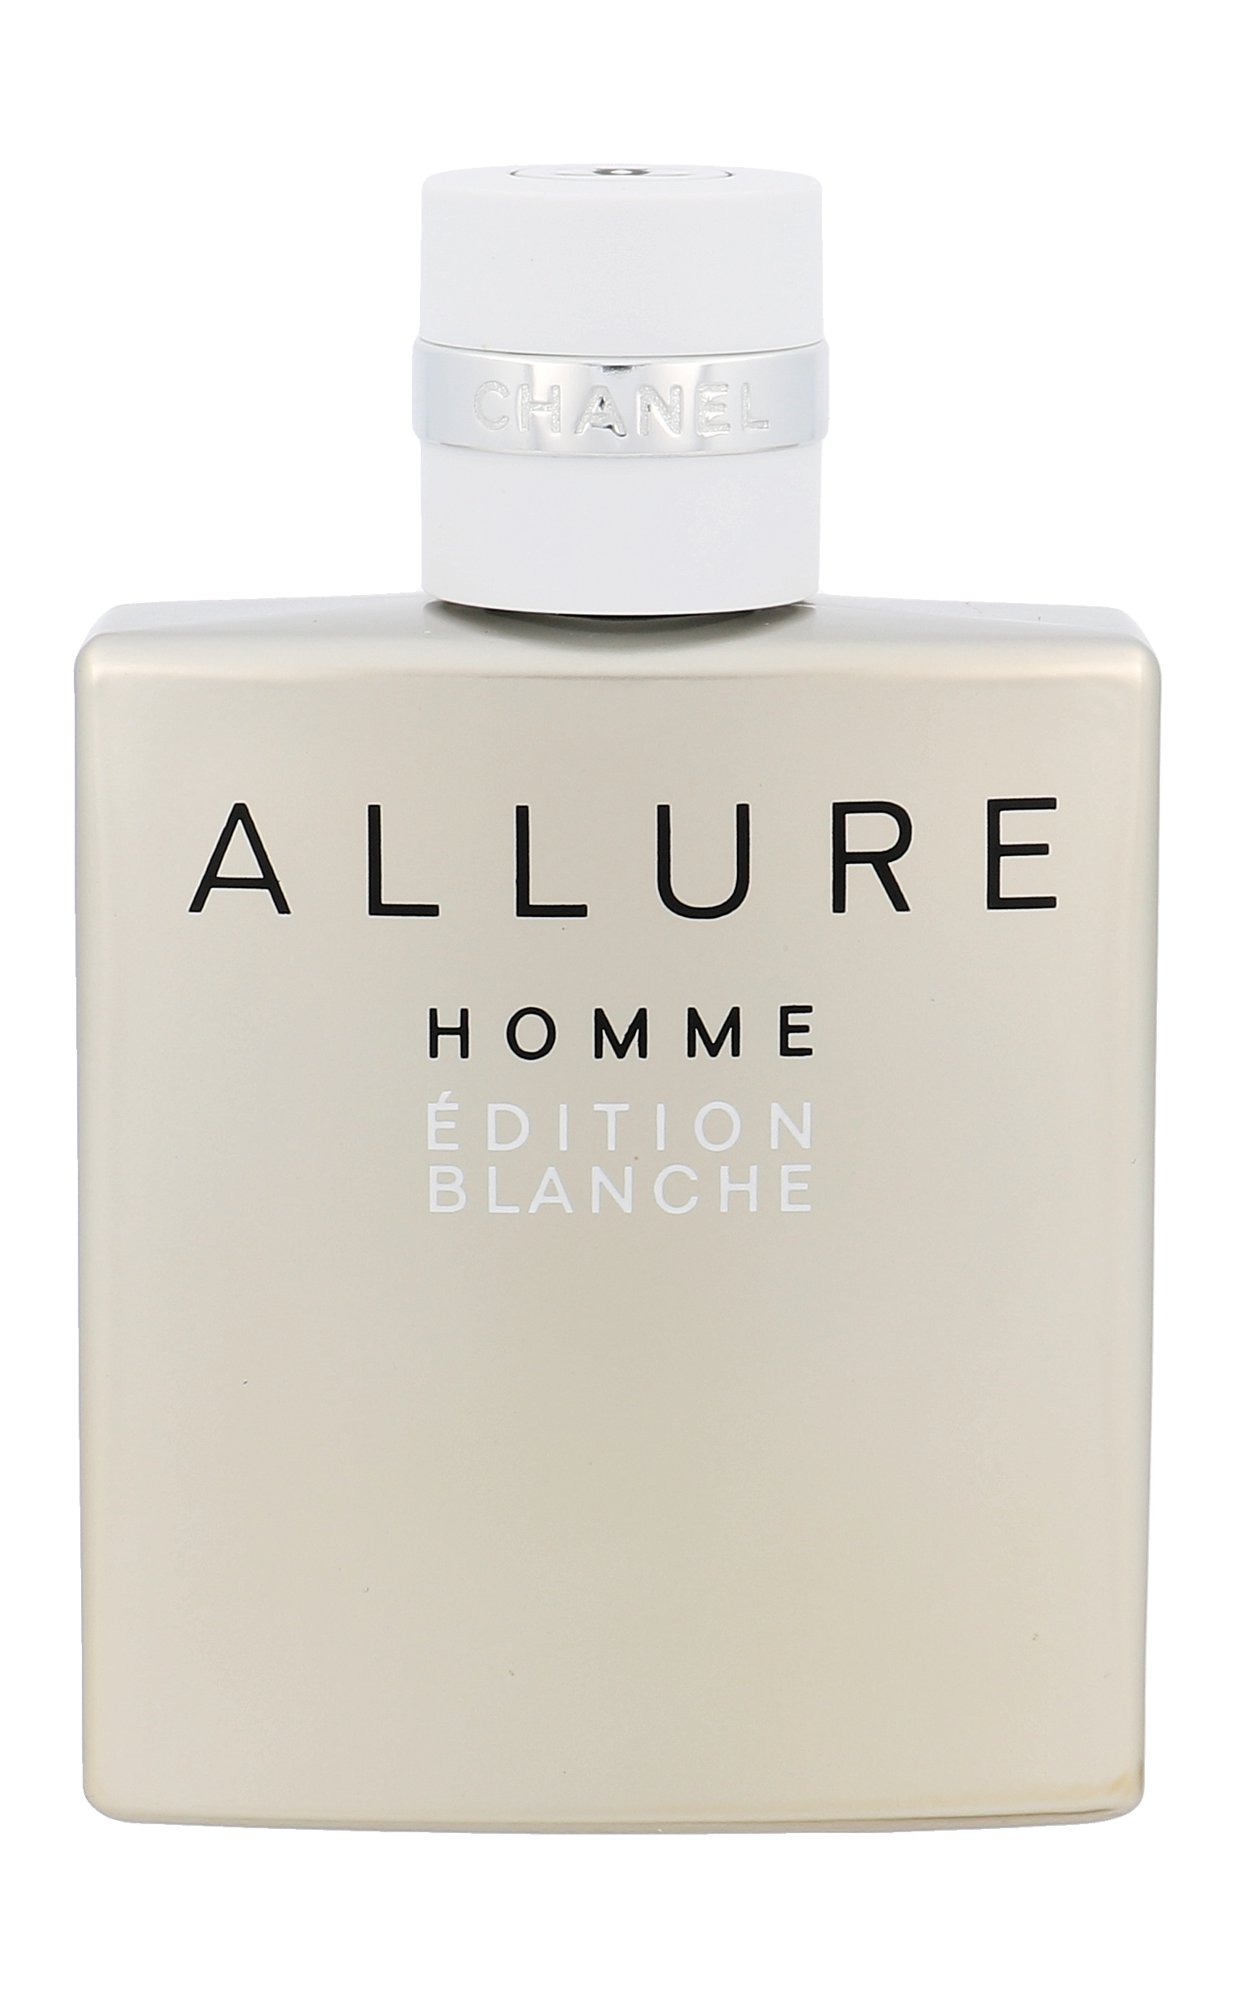 Chanel Allure Homme Edition Blanche, Parfumovaná voda 50ml